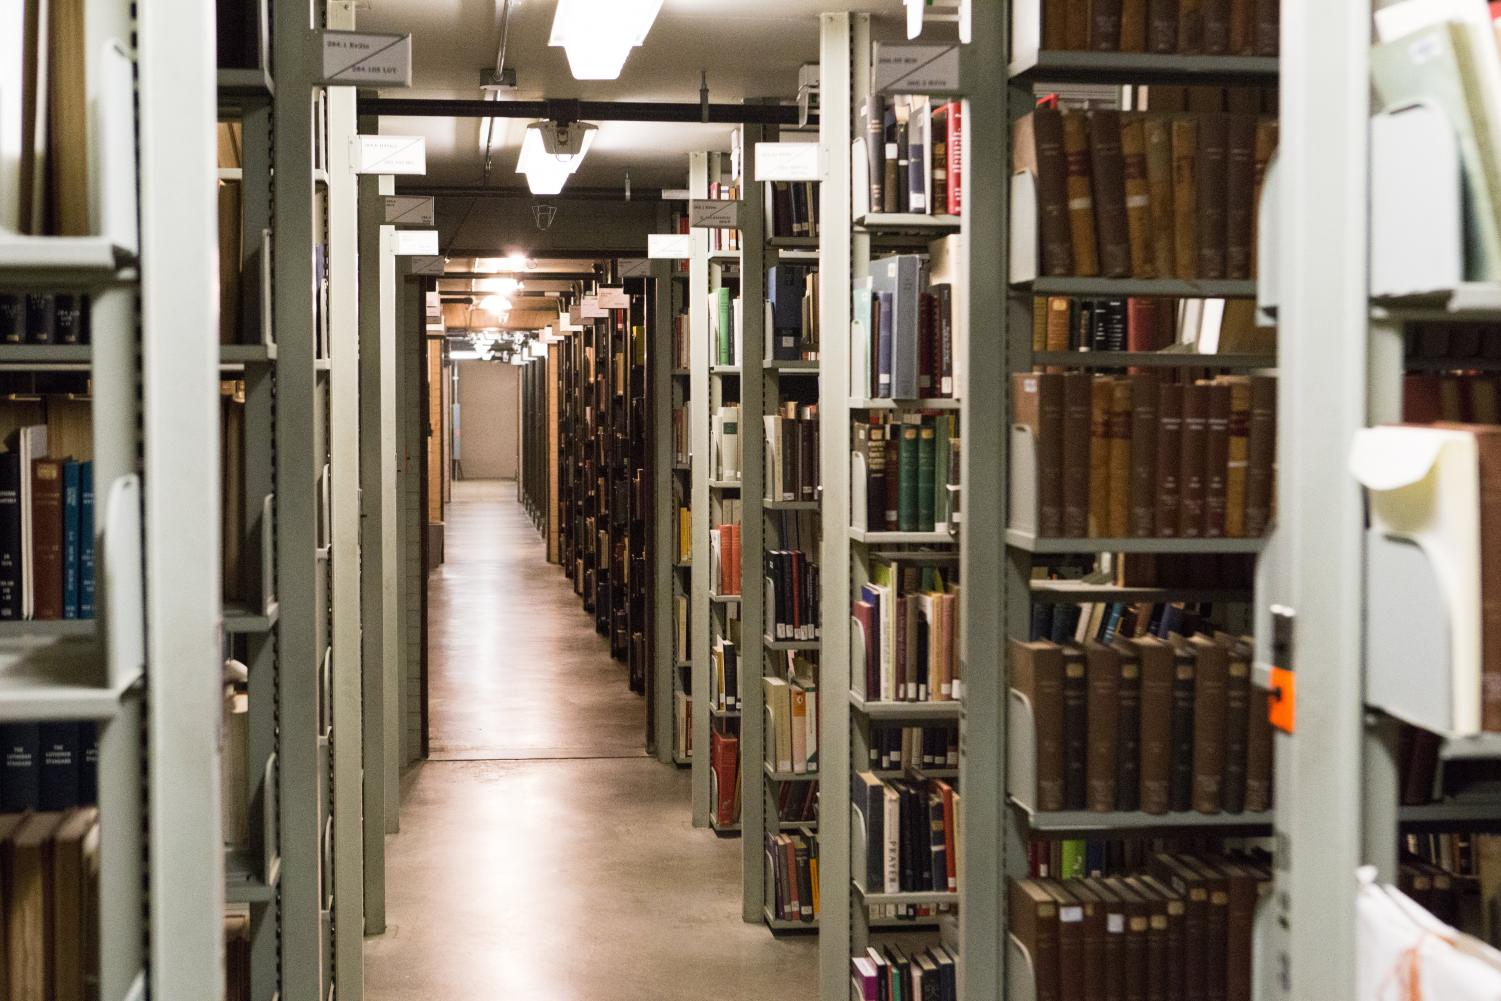 The Main Library's Main Stacks has ten levels of books and resources available to students. The University library system offers a multitude of resources for students.